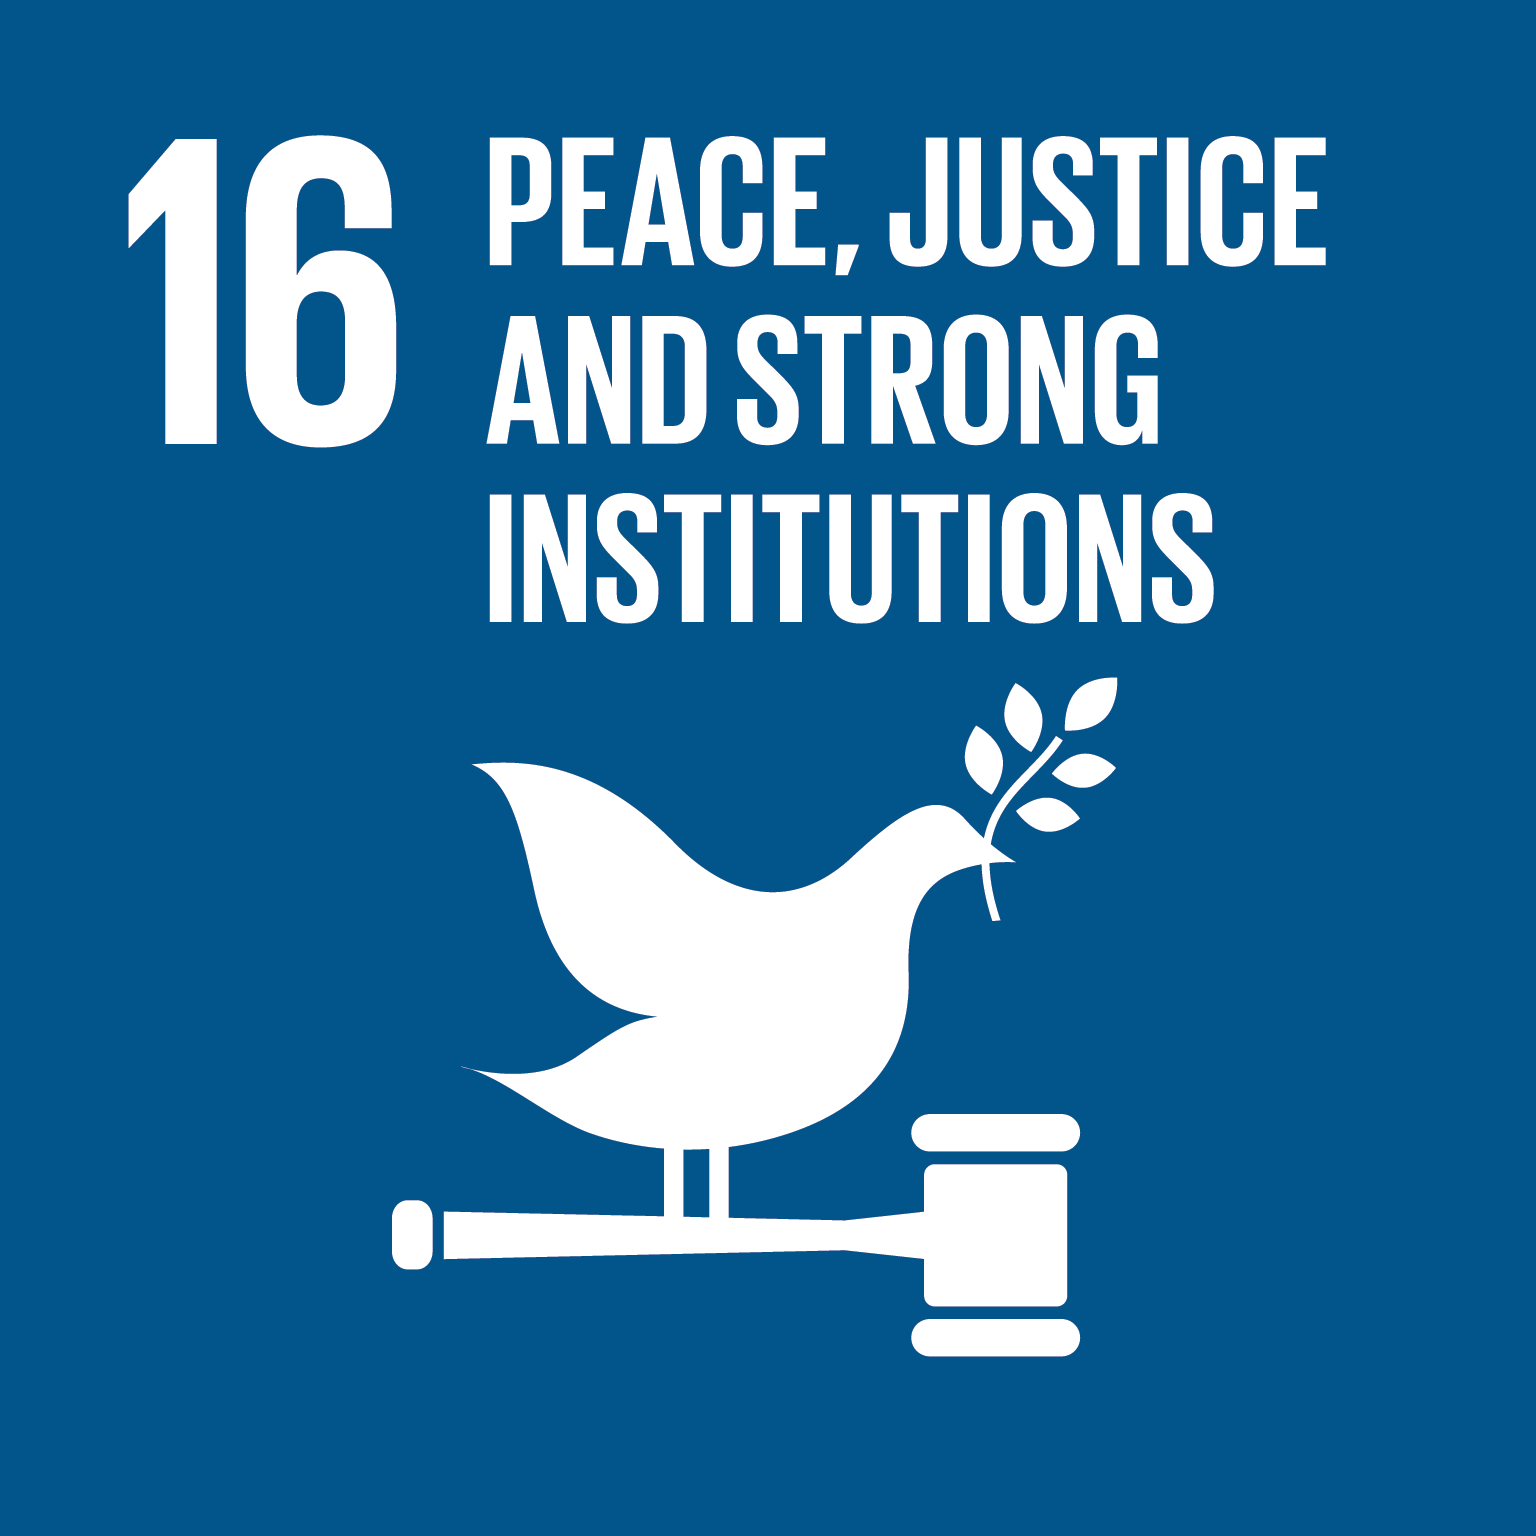 16: Peace, Justice and Strong Institutions